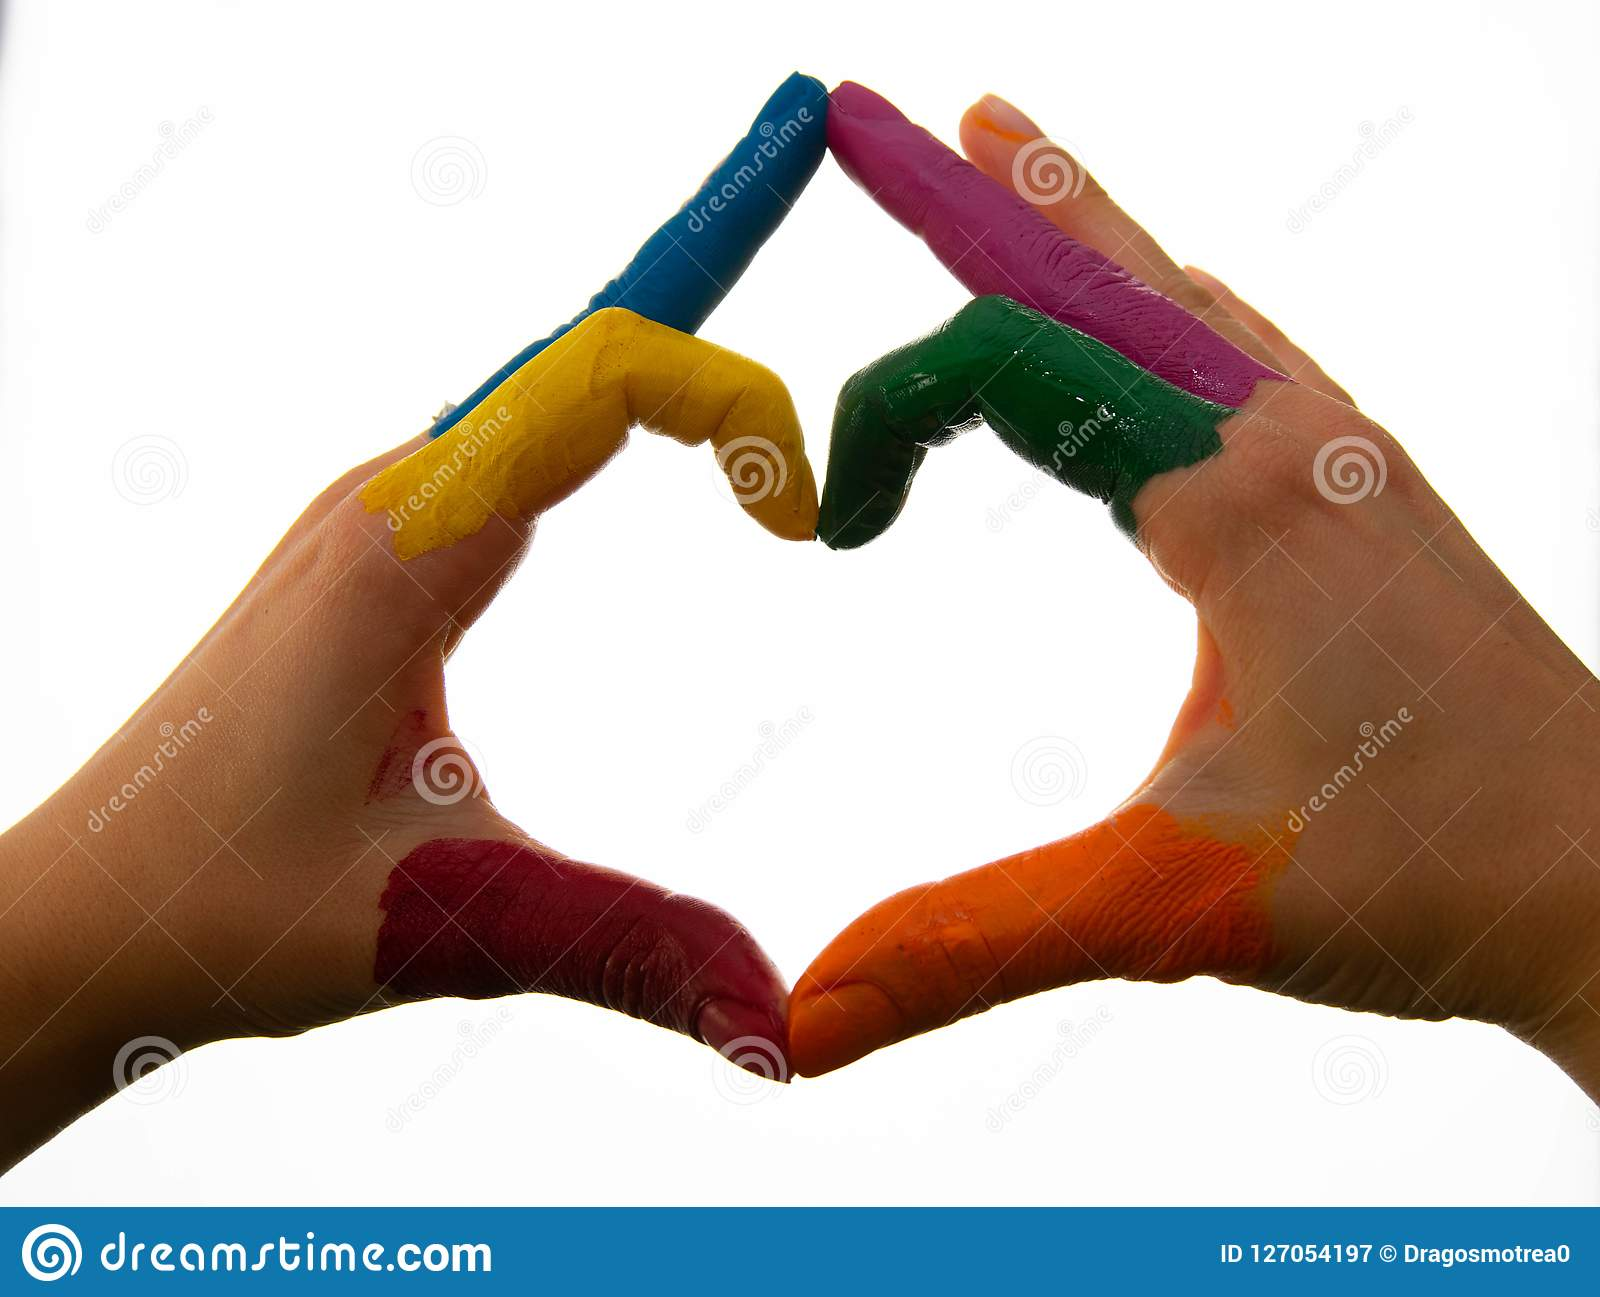 supporting hands make a heat sign showing homosexuality colours